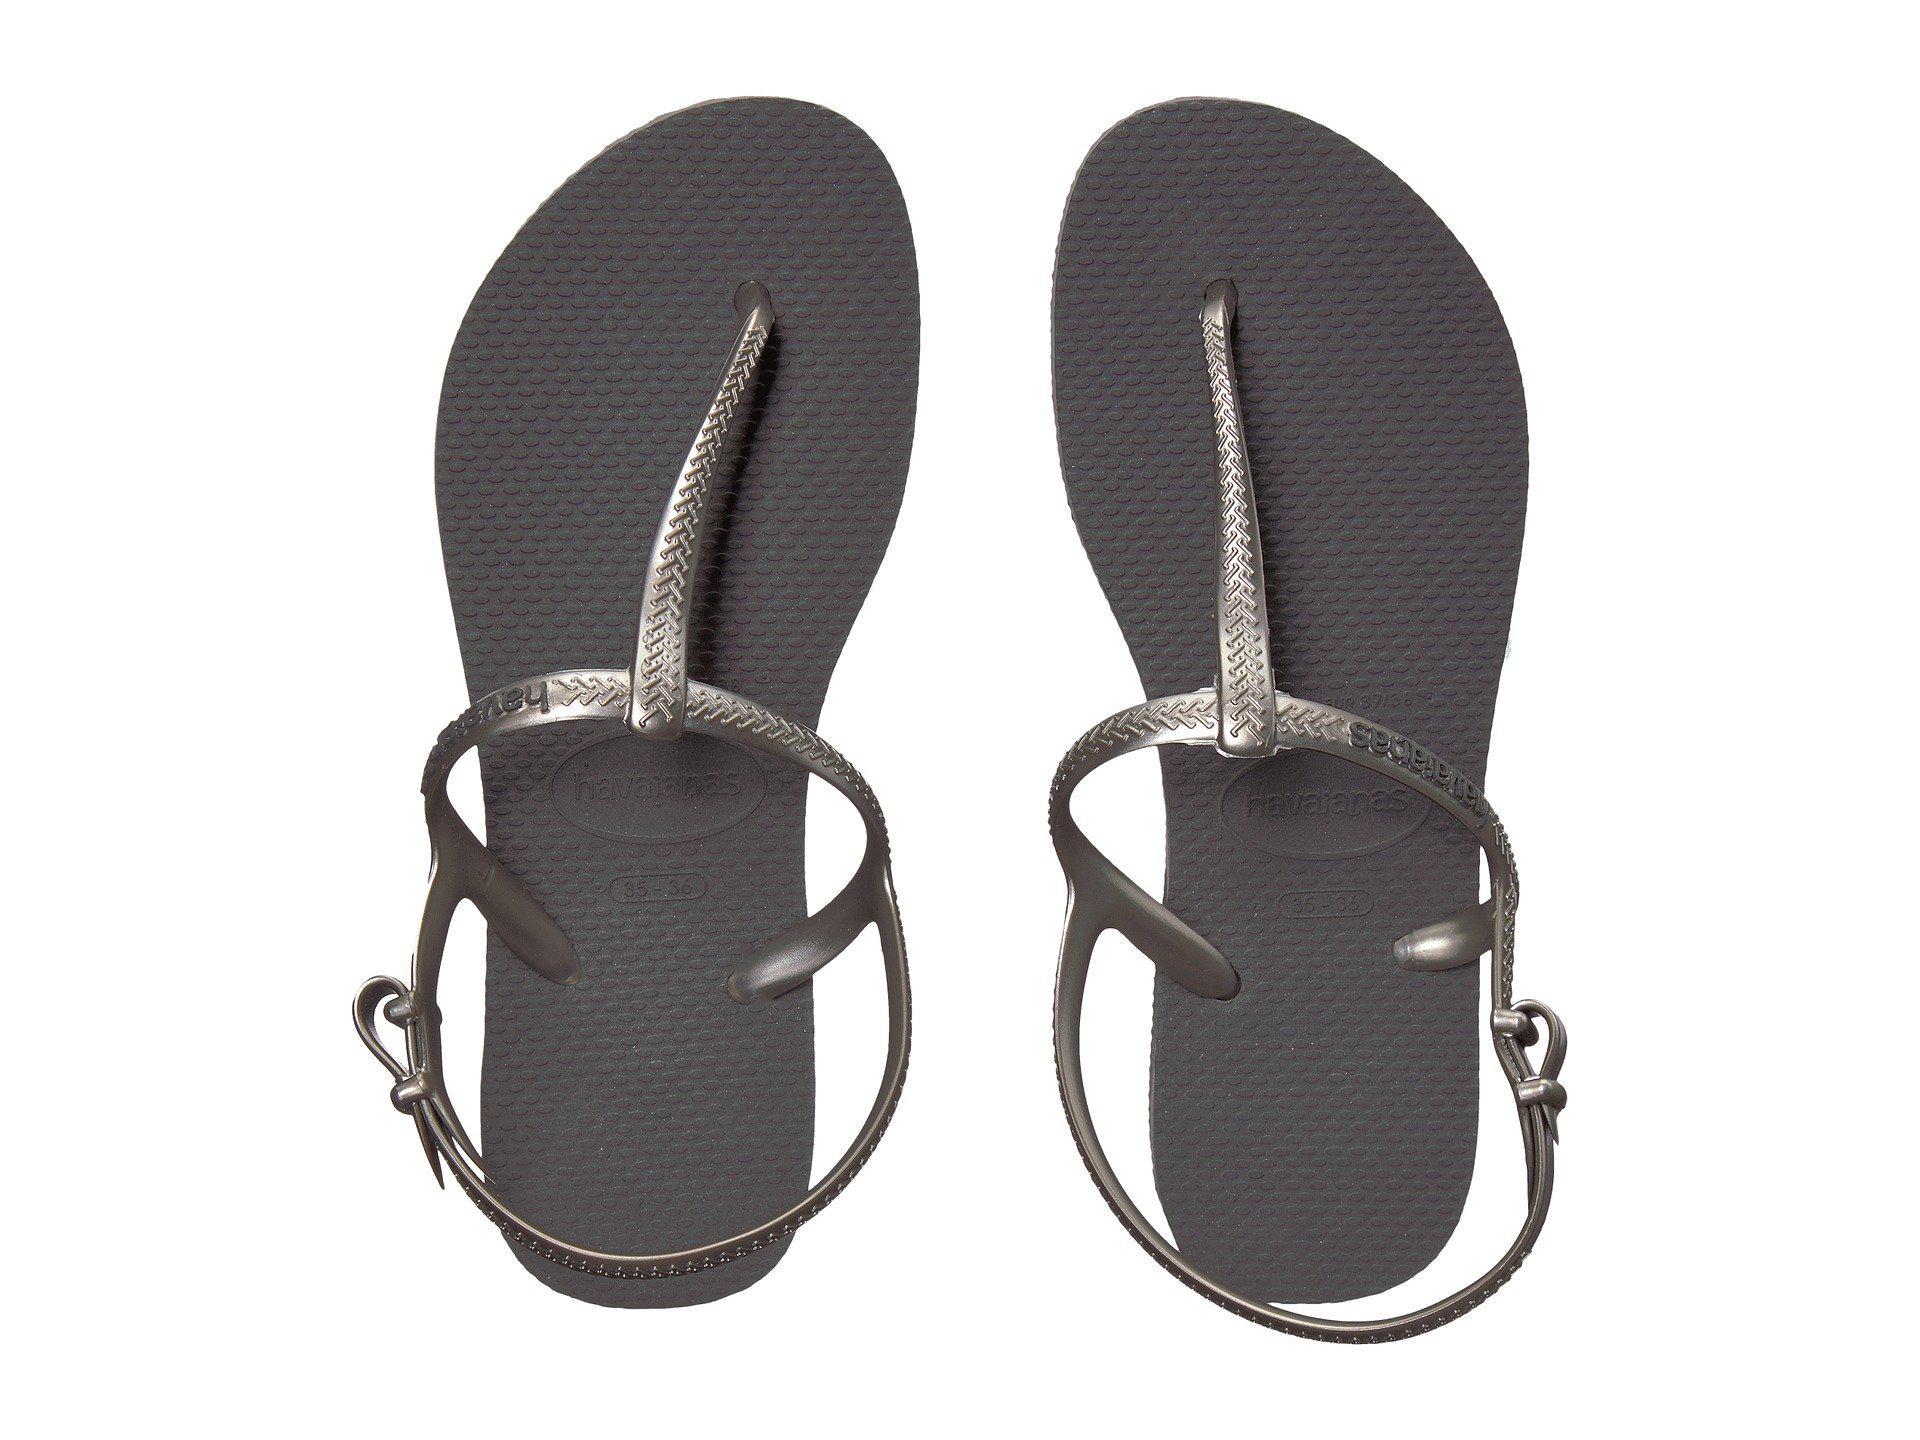 88bfc16a64501b Lyst - Havaianas Freedom Sl Flip-flops (black) Women s Sandals in ...